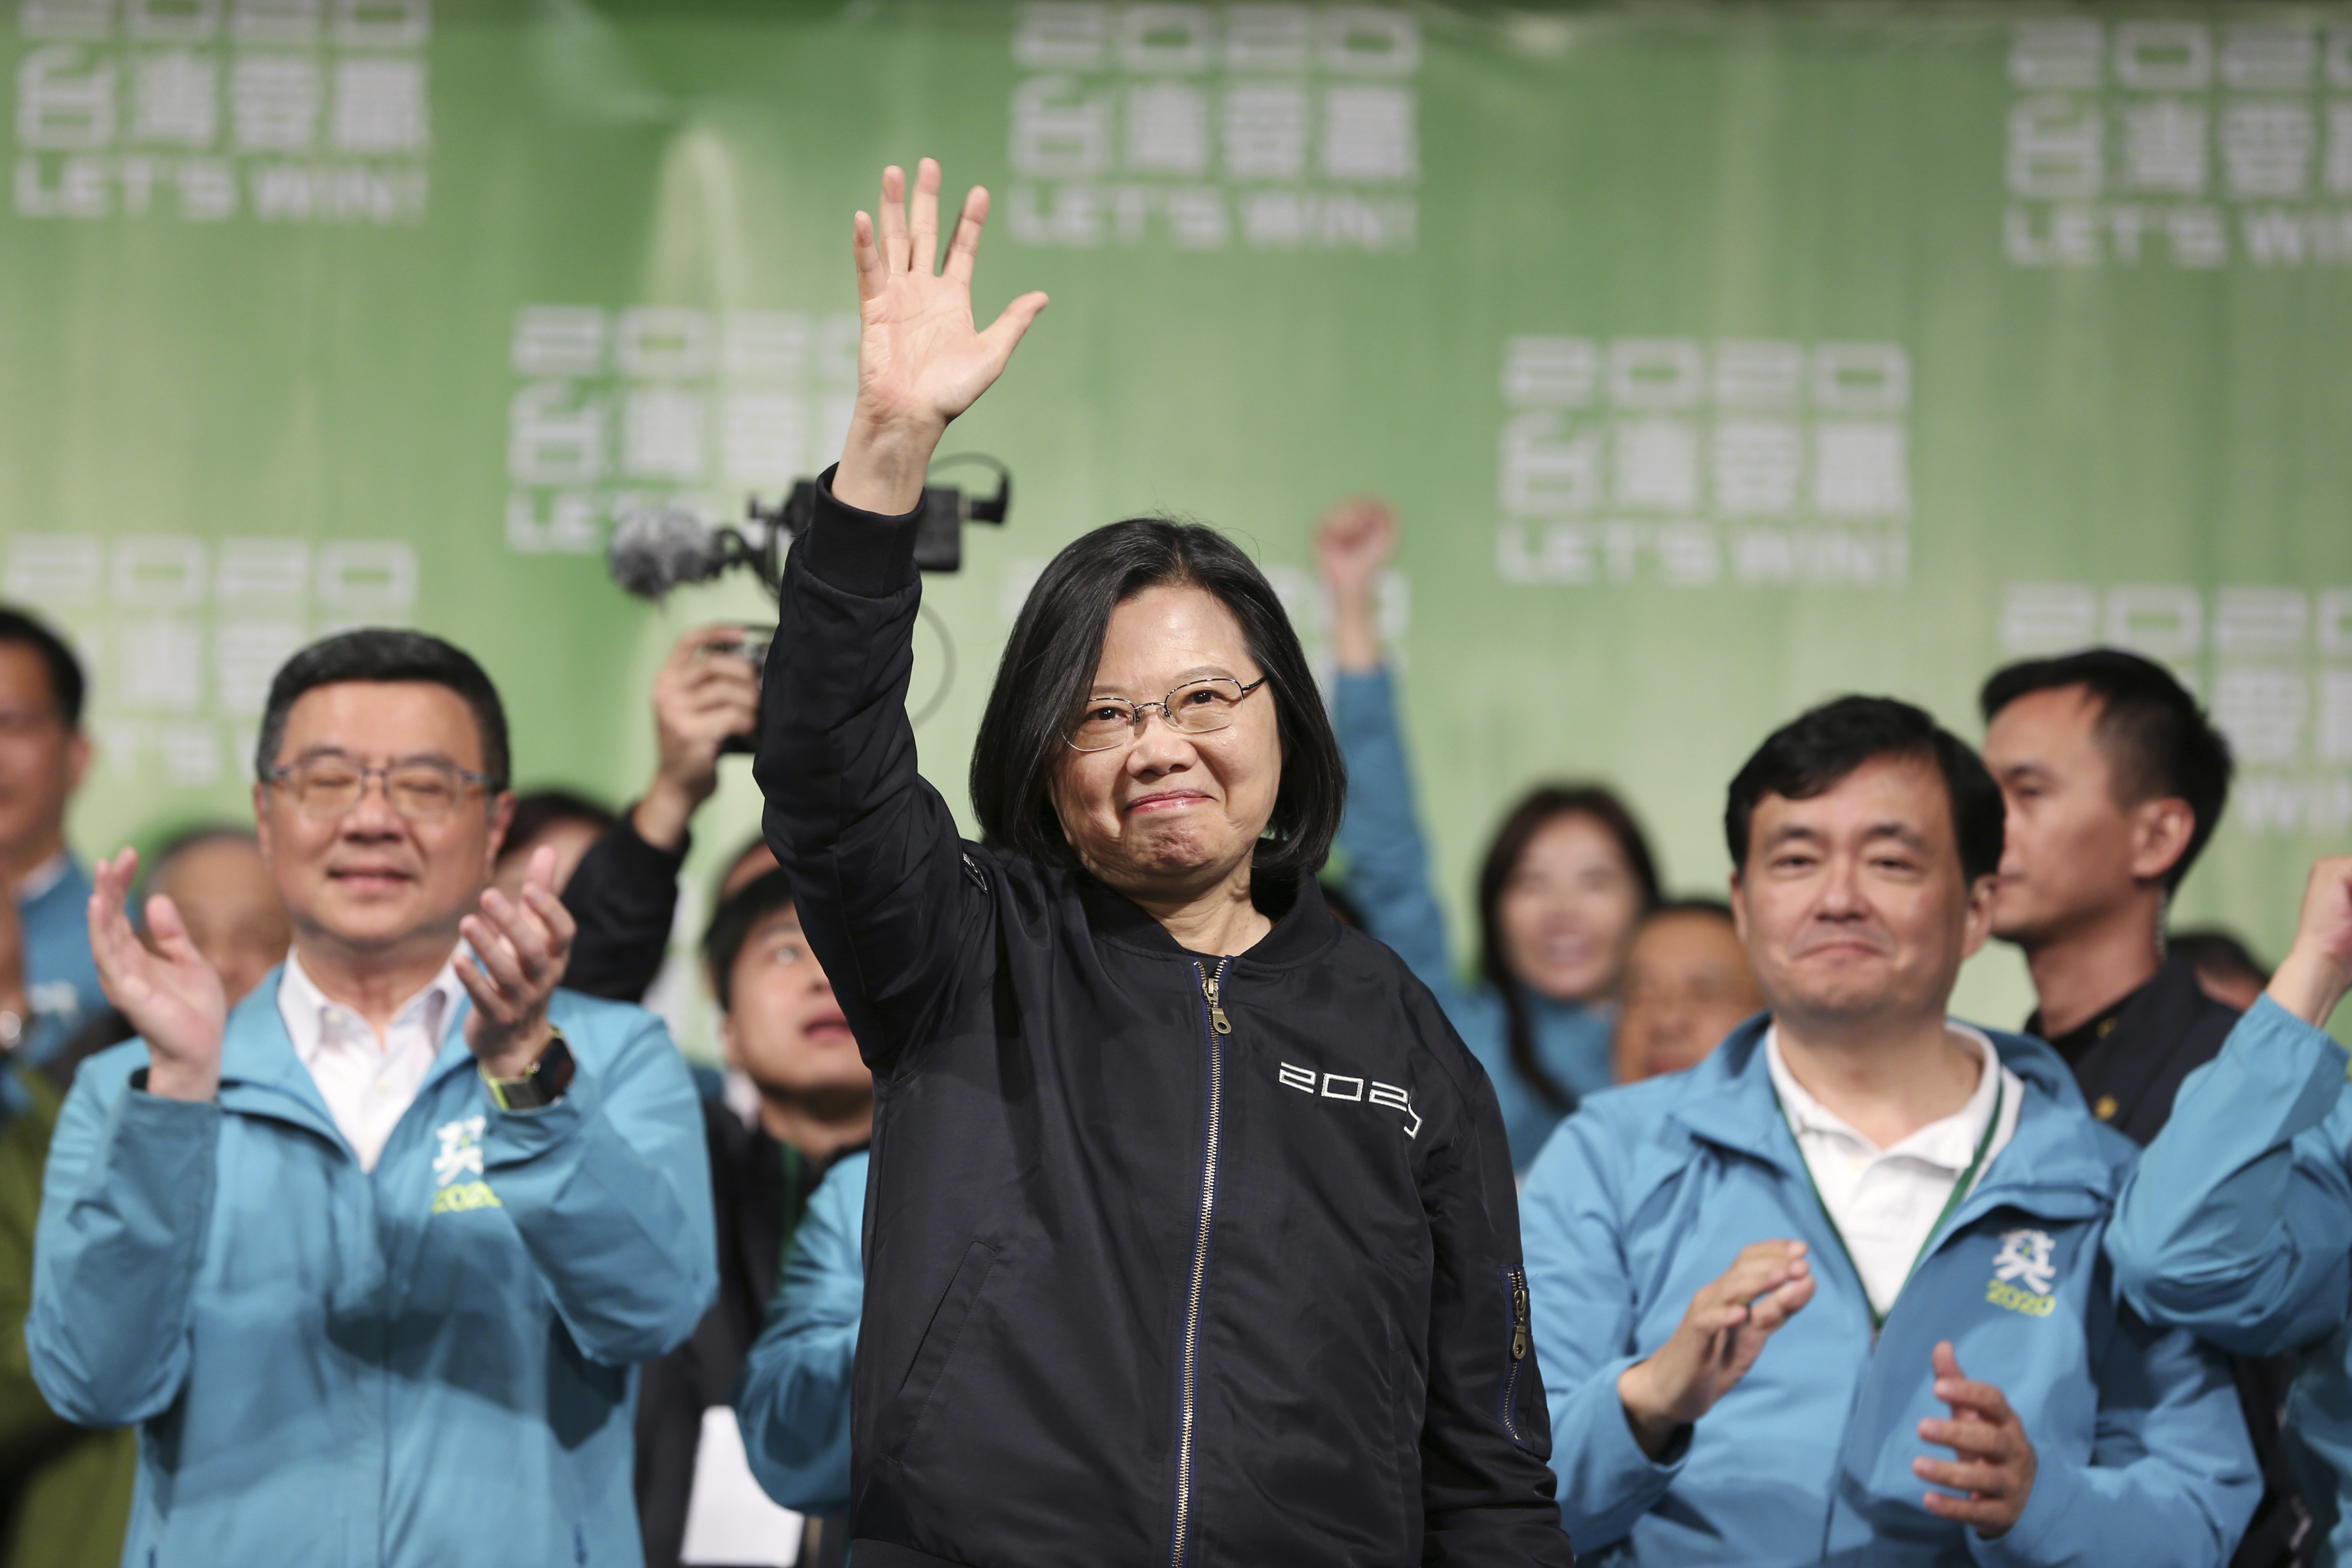 Taiwan's 2020 presidential election candidate, Taiwanese President Tsai Ing-wen celebrates her victory with supporters in Taipei, Taiwan, on Jan. 11, 2020.